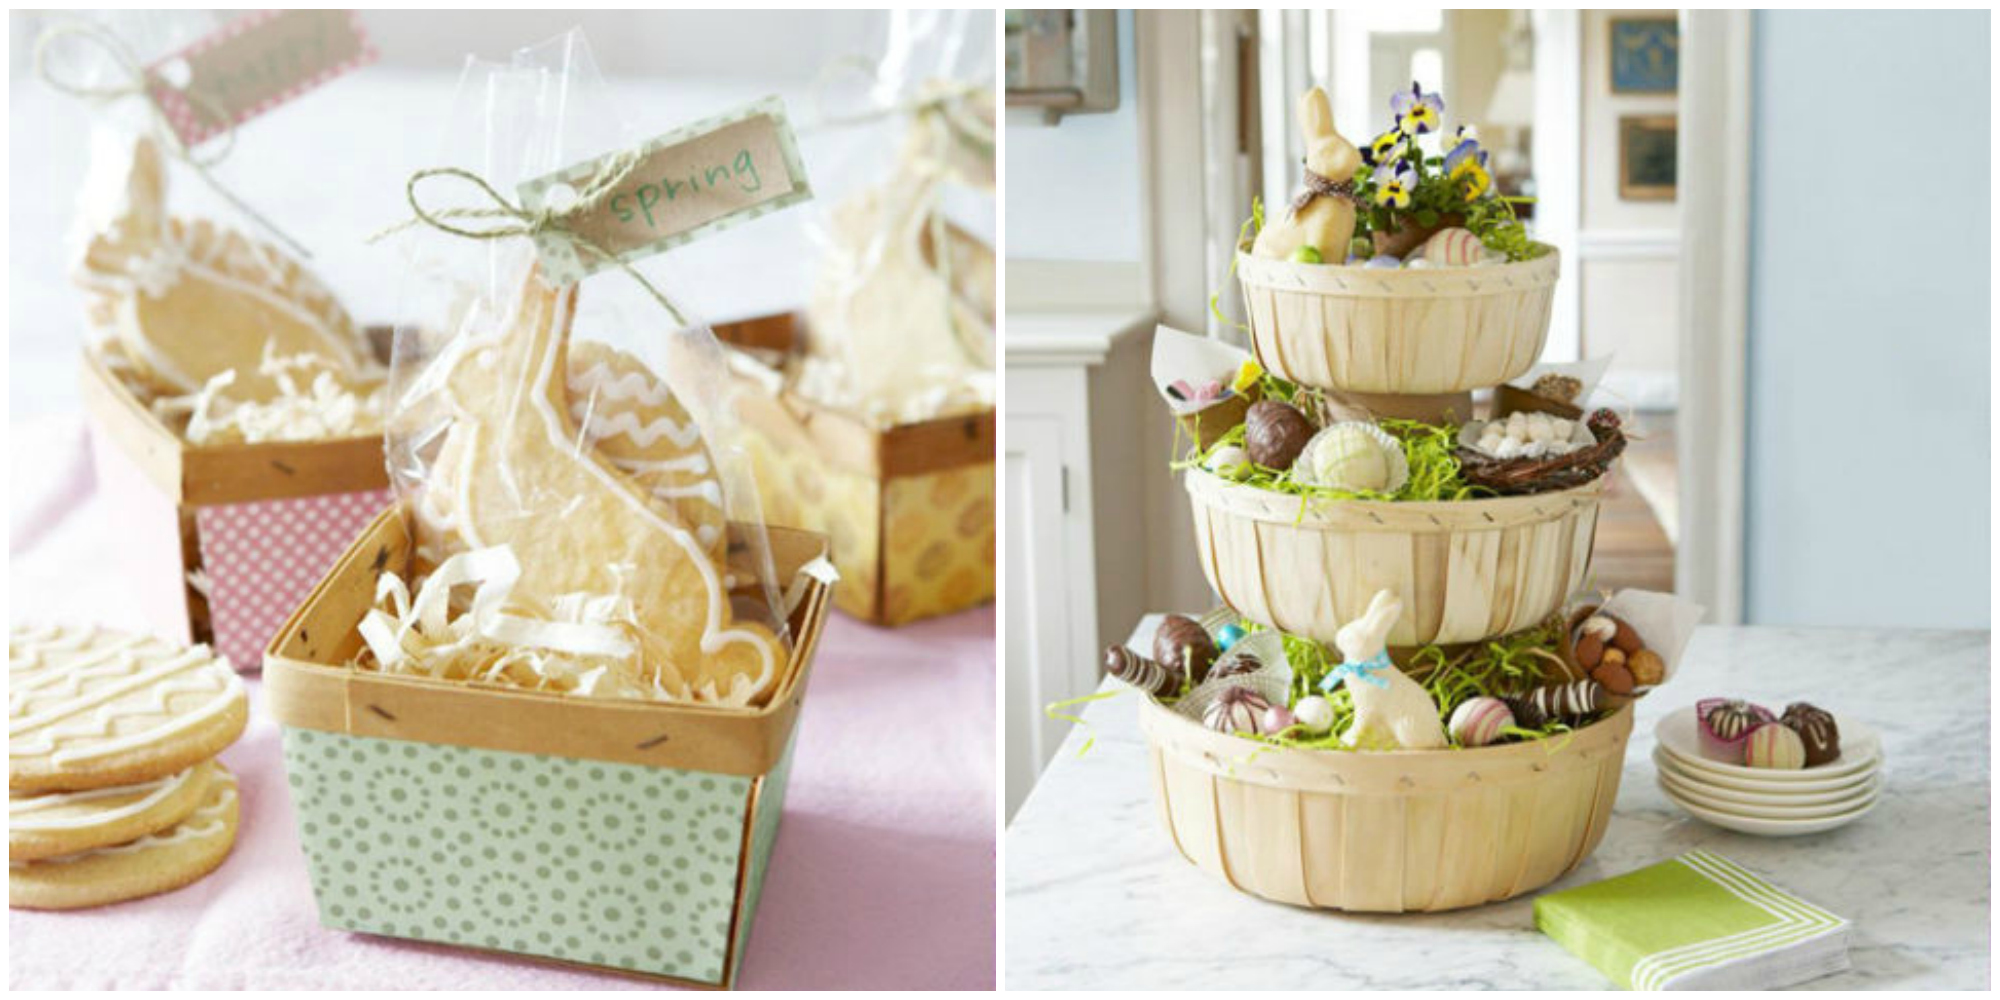 35 Diy Easter Basket Ideas Unique Homemade Easter